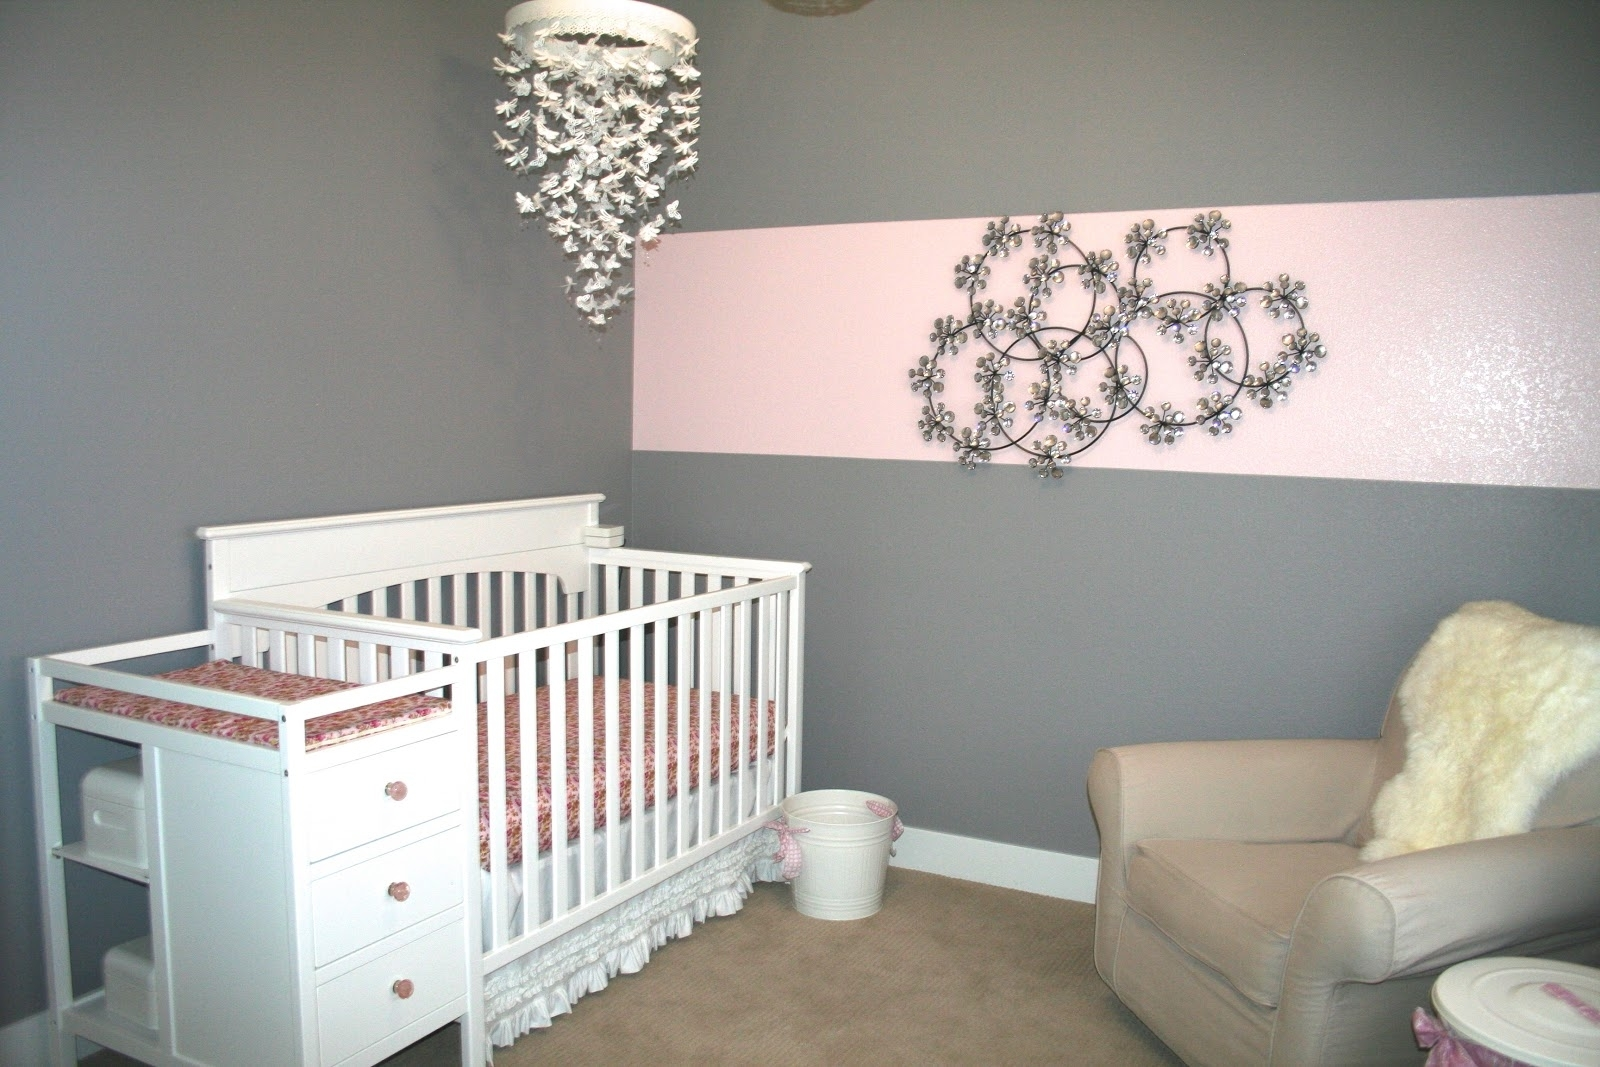 Chandeliers For Girl Nursery Regarding Most Up To Date Baby Nursery Decor: Pictures Chandeliers For Baby Girl Nursery (View 8 of 20)